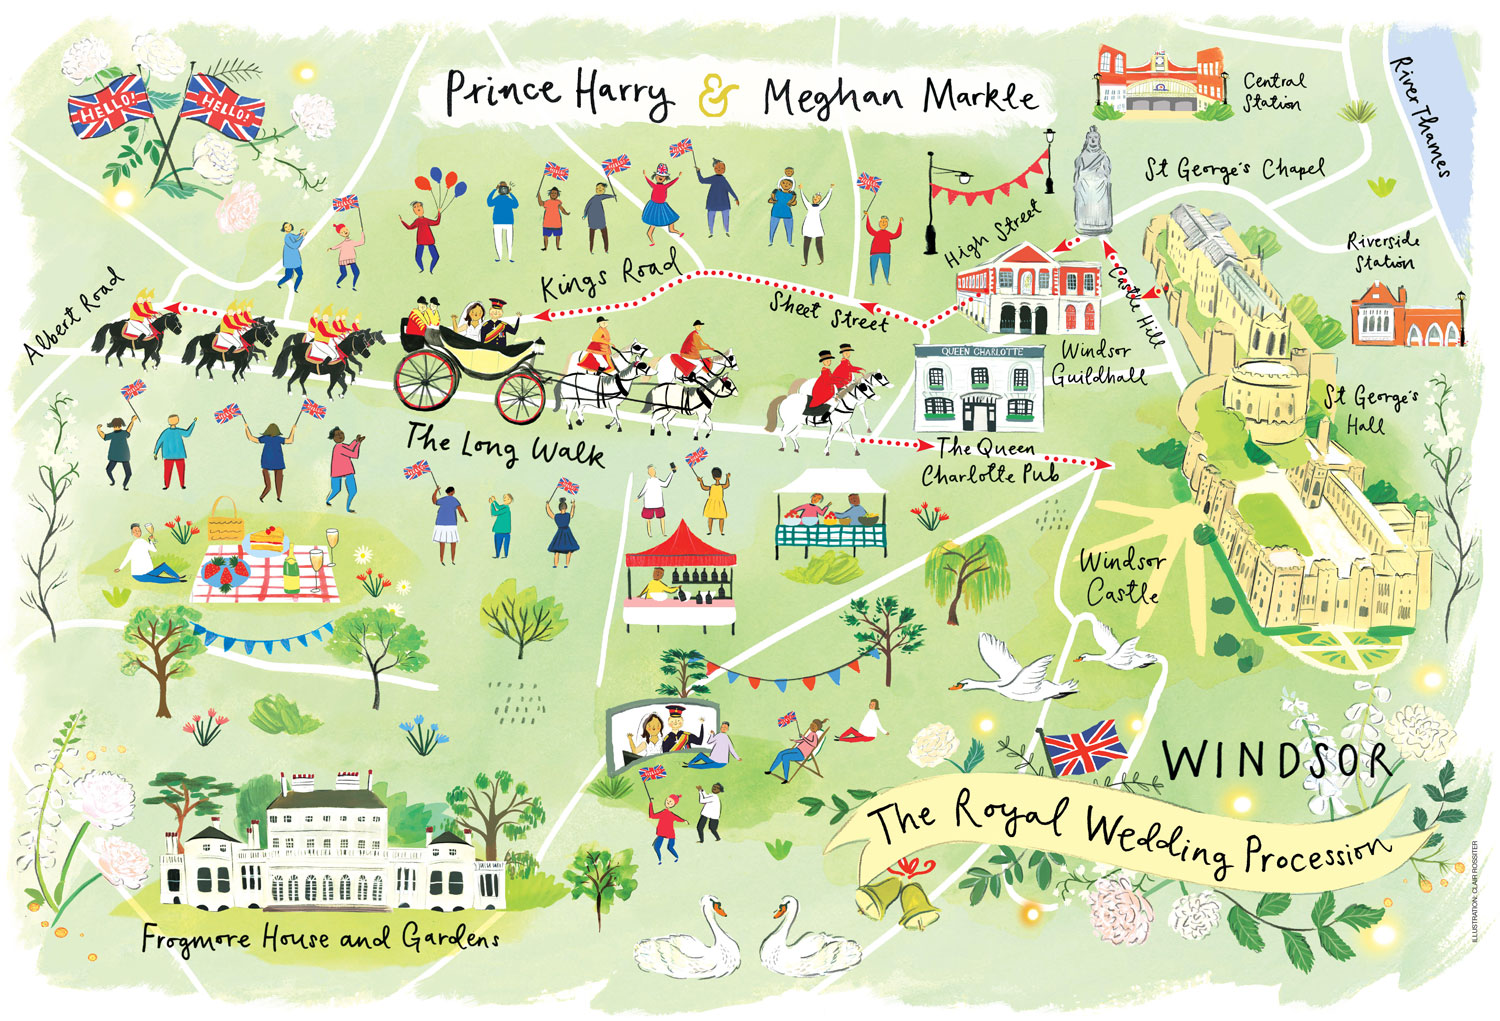 Windsor Castle Map Here's the ultimate royal wedding procession map in Windsor Windsor Castle Map